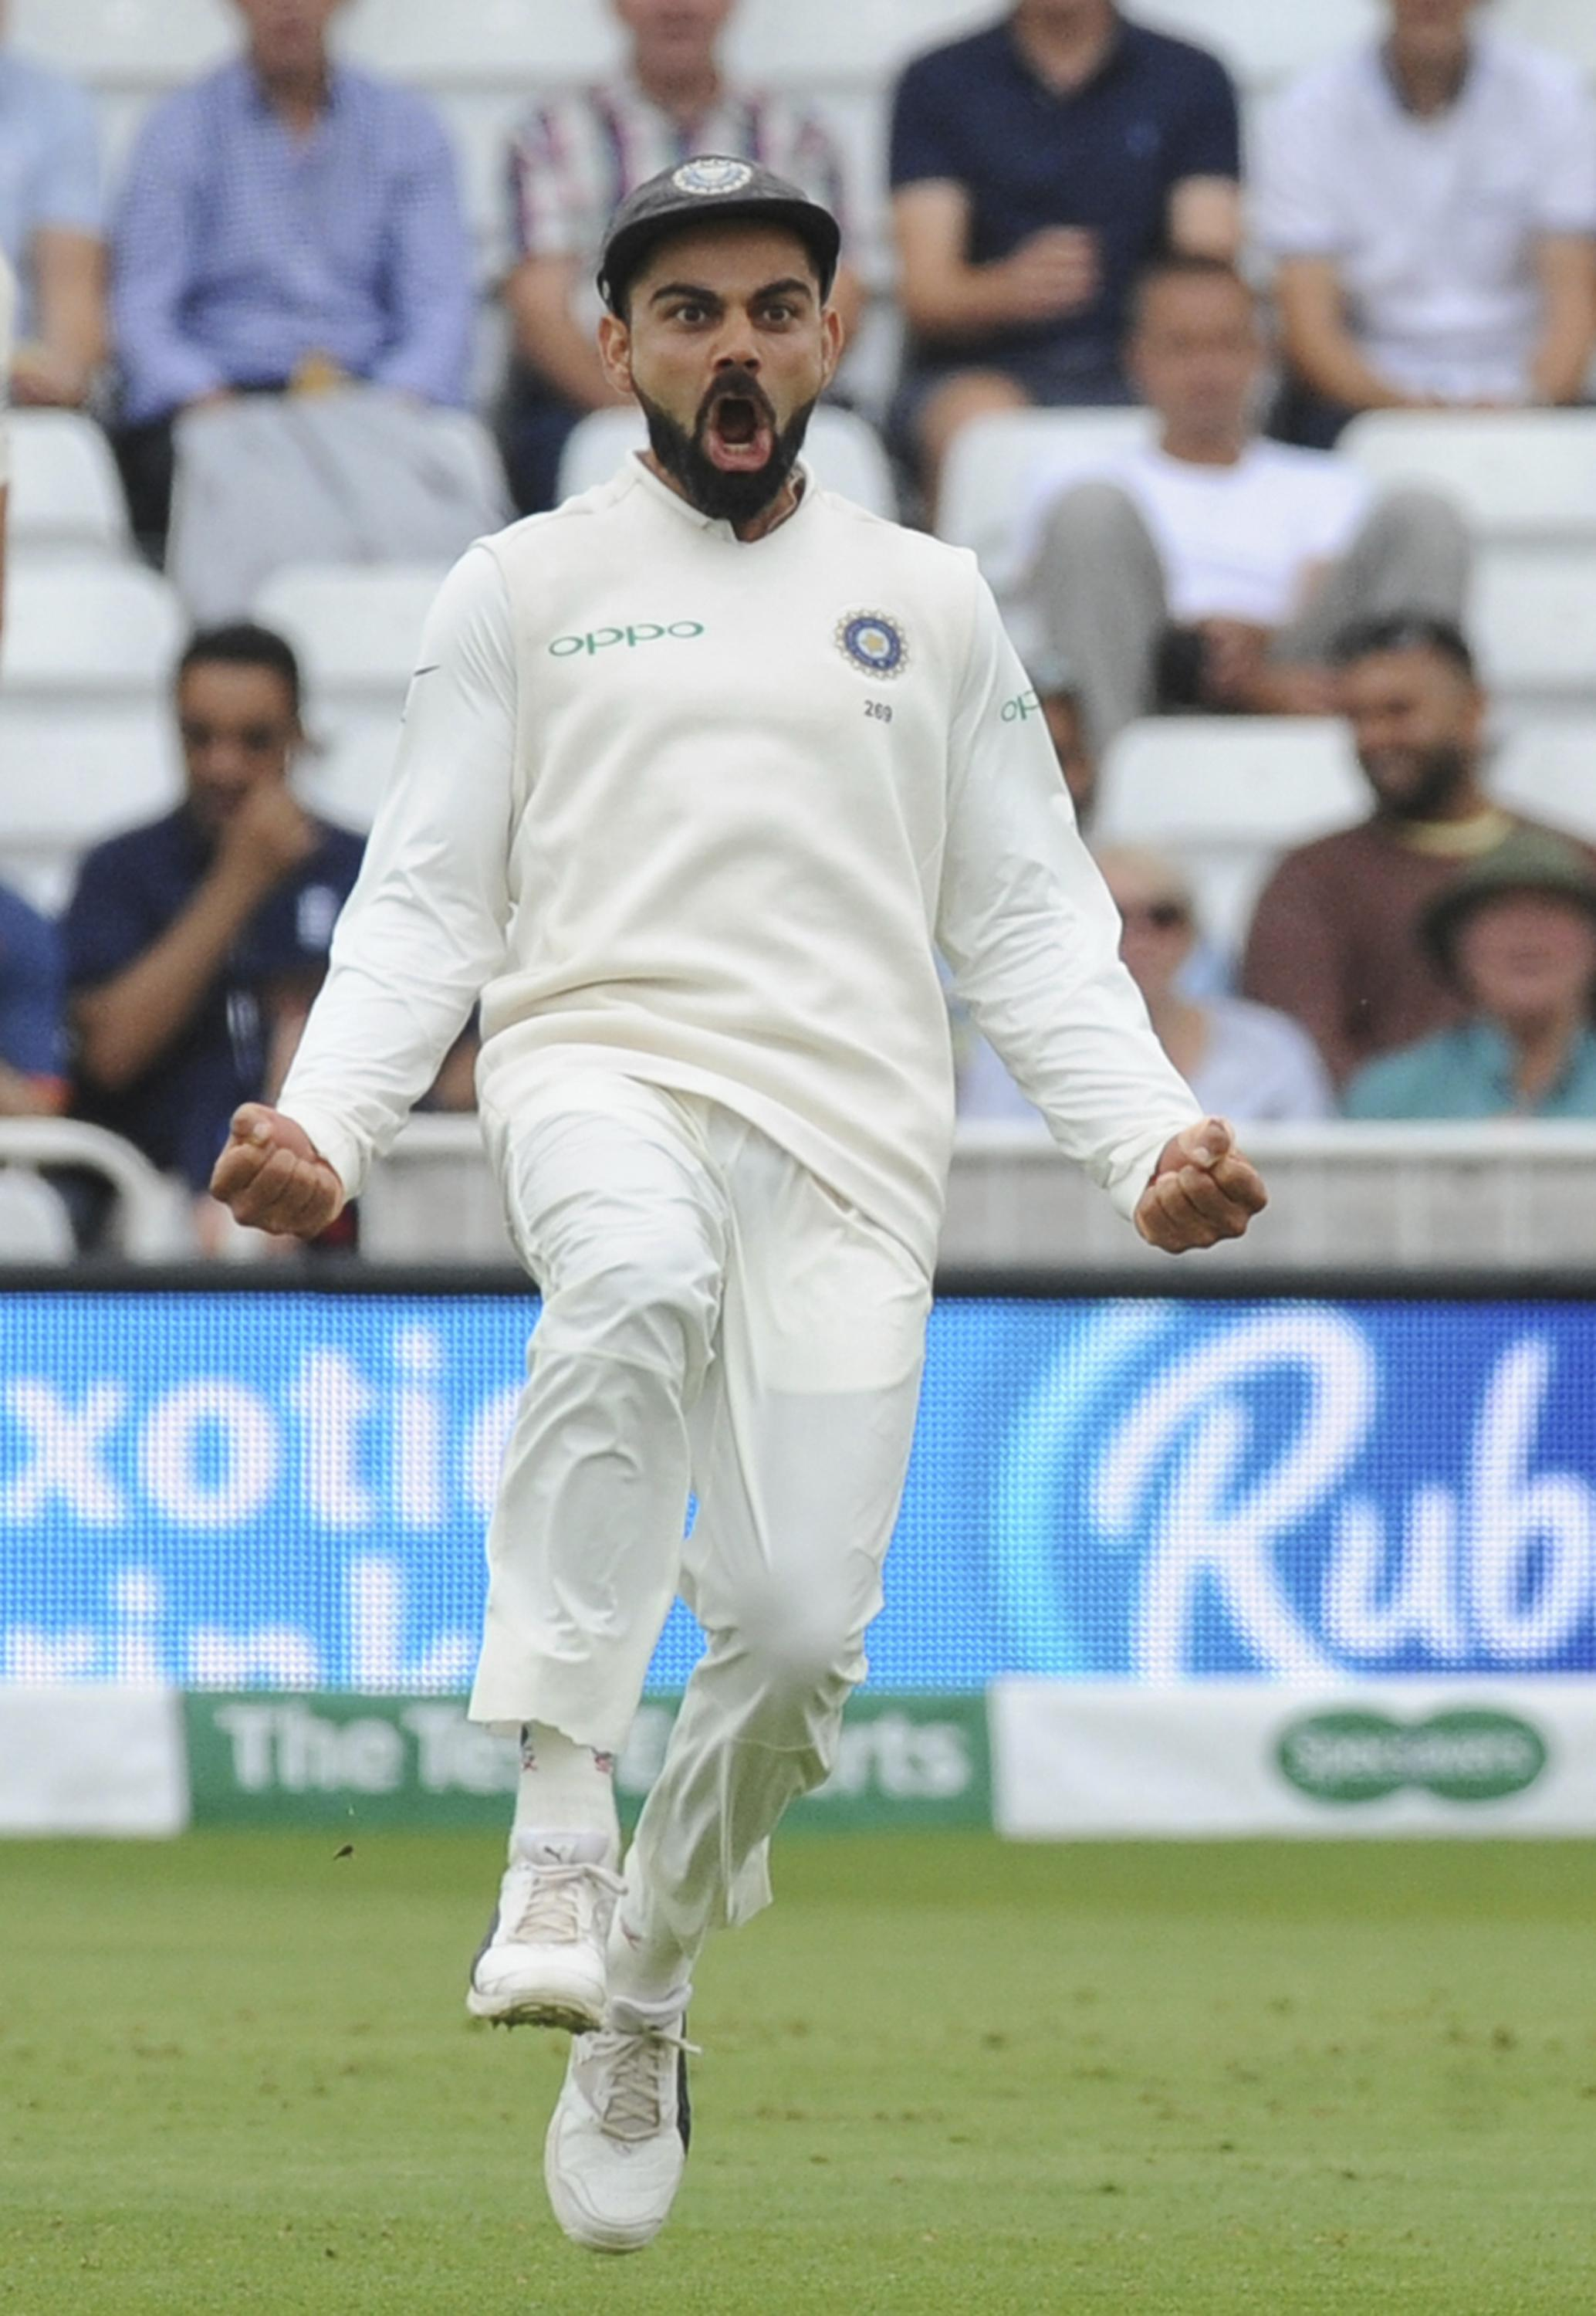 Virat Kohli moved back to the top of the ICC Test Rankings for batsmen with a total of 200 at Trent Bridge